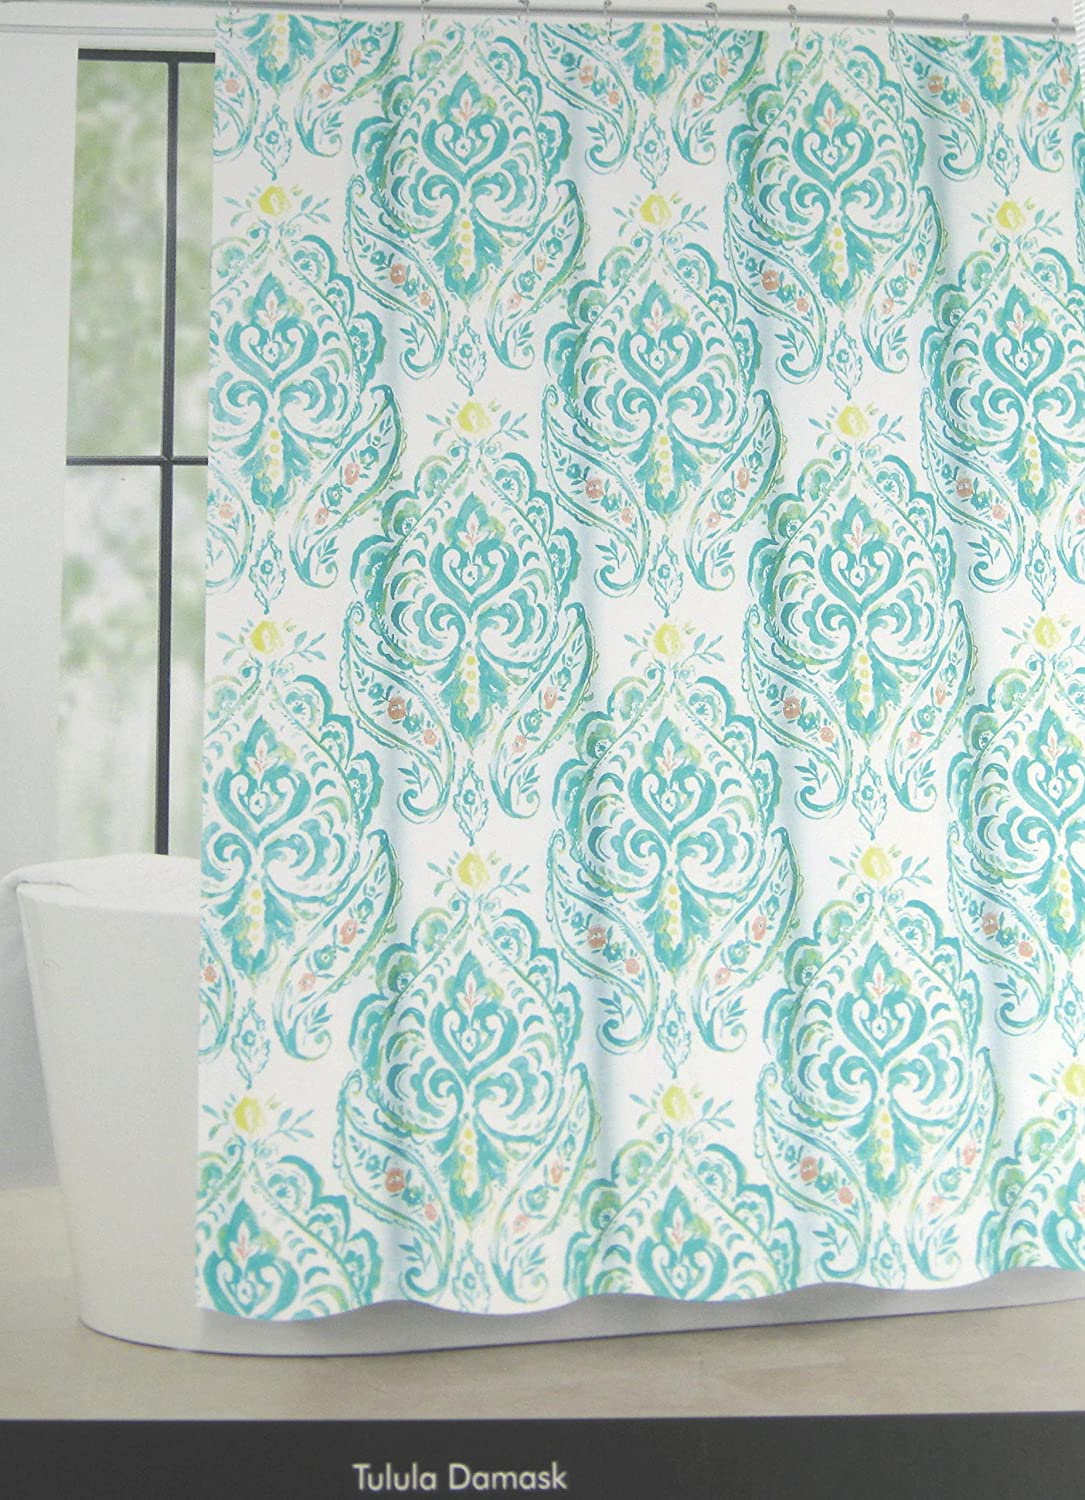 "Tahari Home Fabric Shower Curtain Tulula Floral Damask Whtie/Aqua 72"" X 72"""